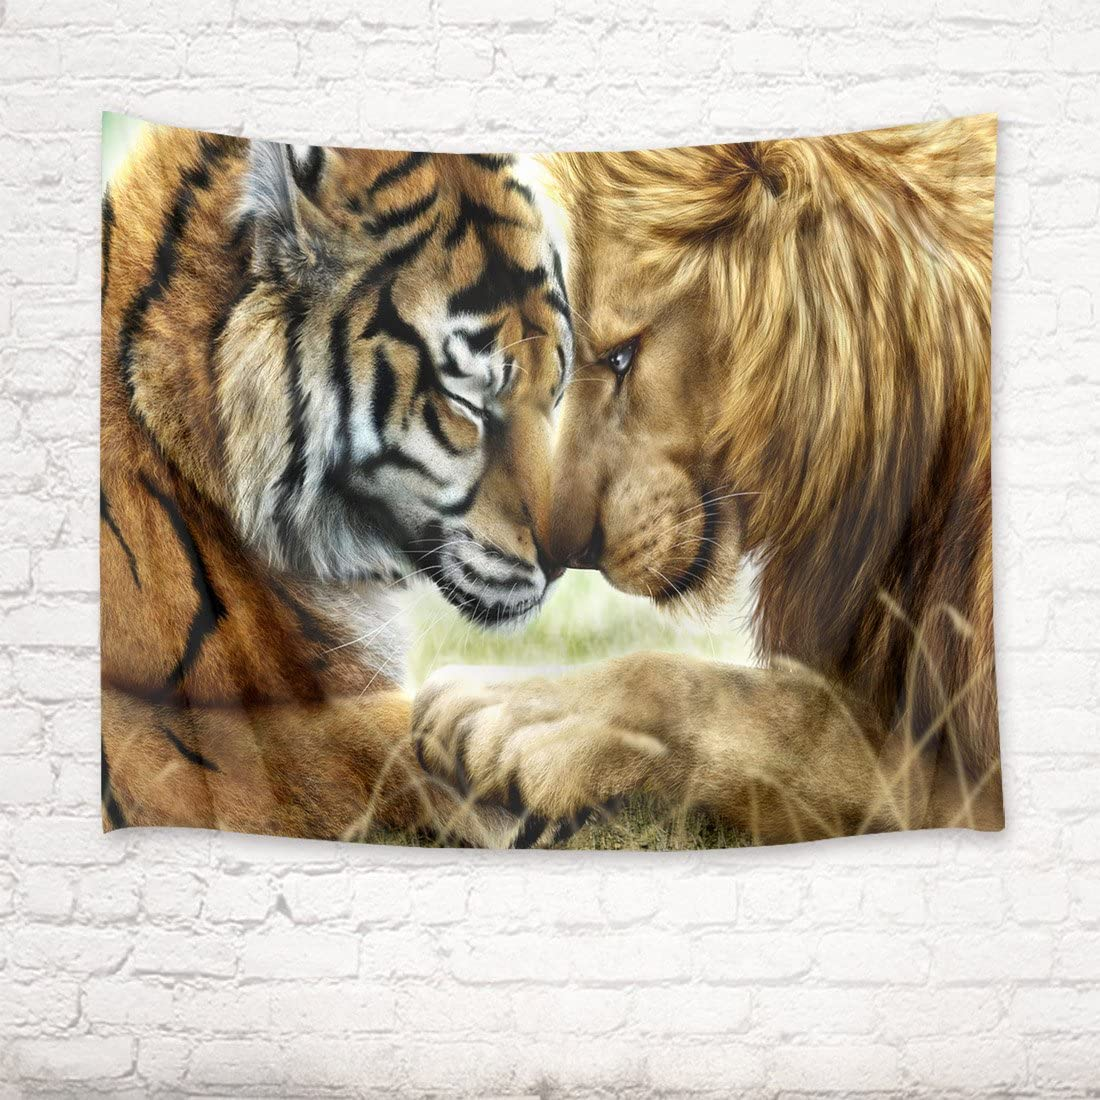 HVEST Tiger and Lion Tapestry Closed Friend Wall Hanging Wild Animal Tapestries for Bedroom,Living Room,Dorm Party Wall Decor,92.5Wx70.9H inches